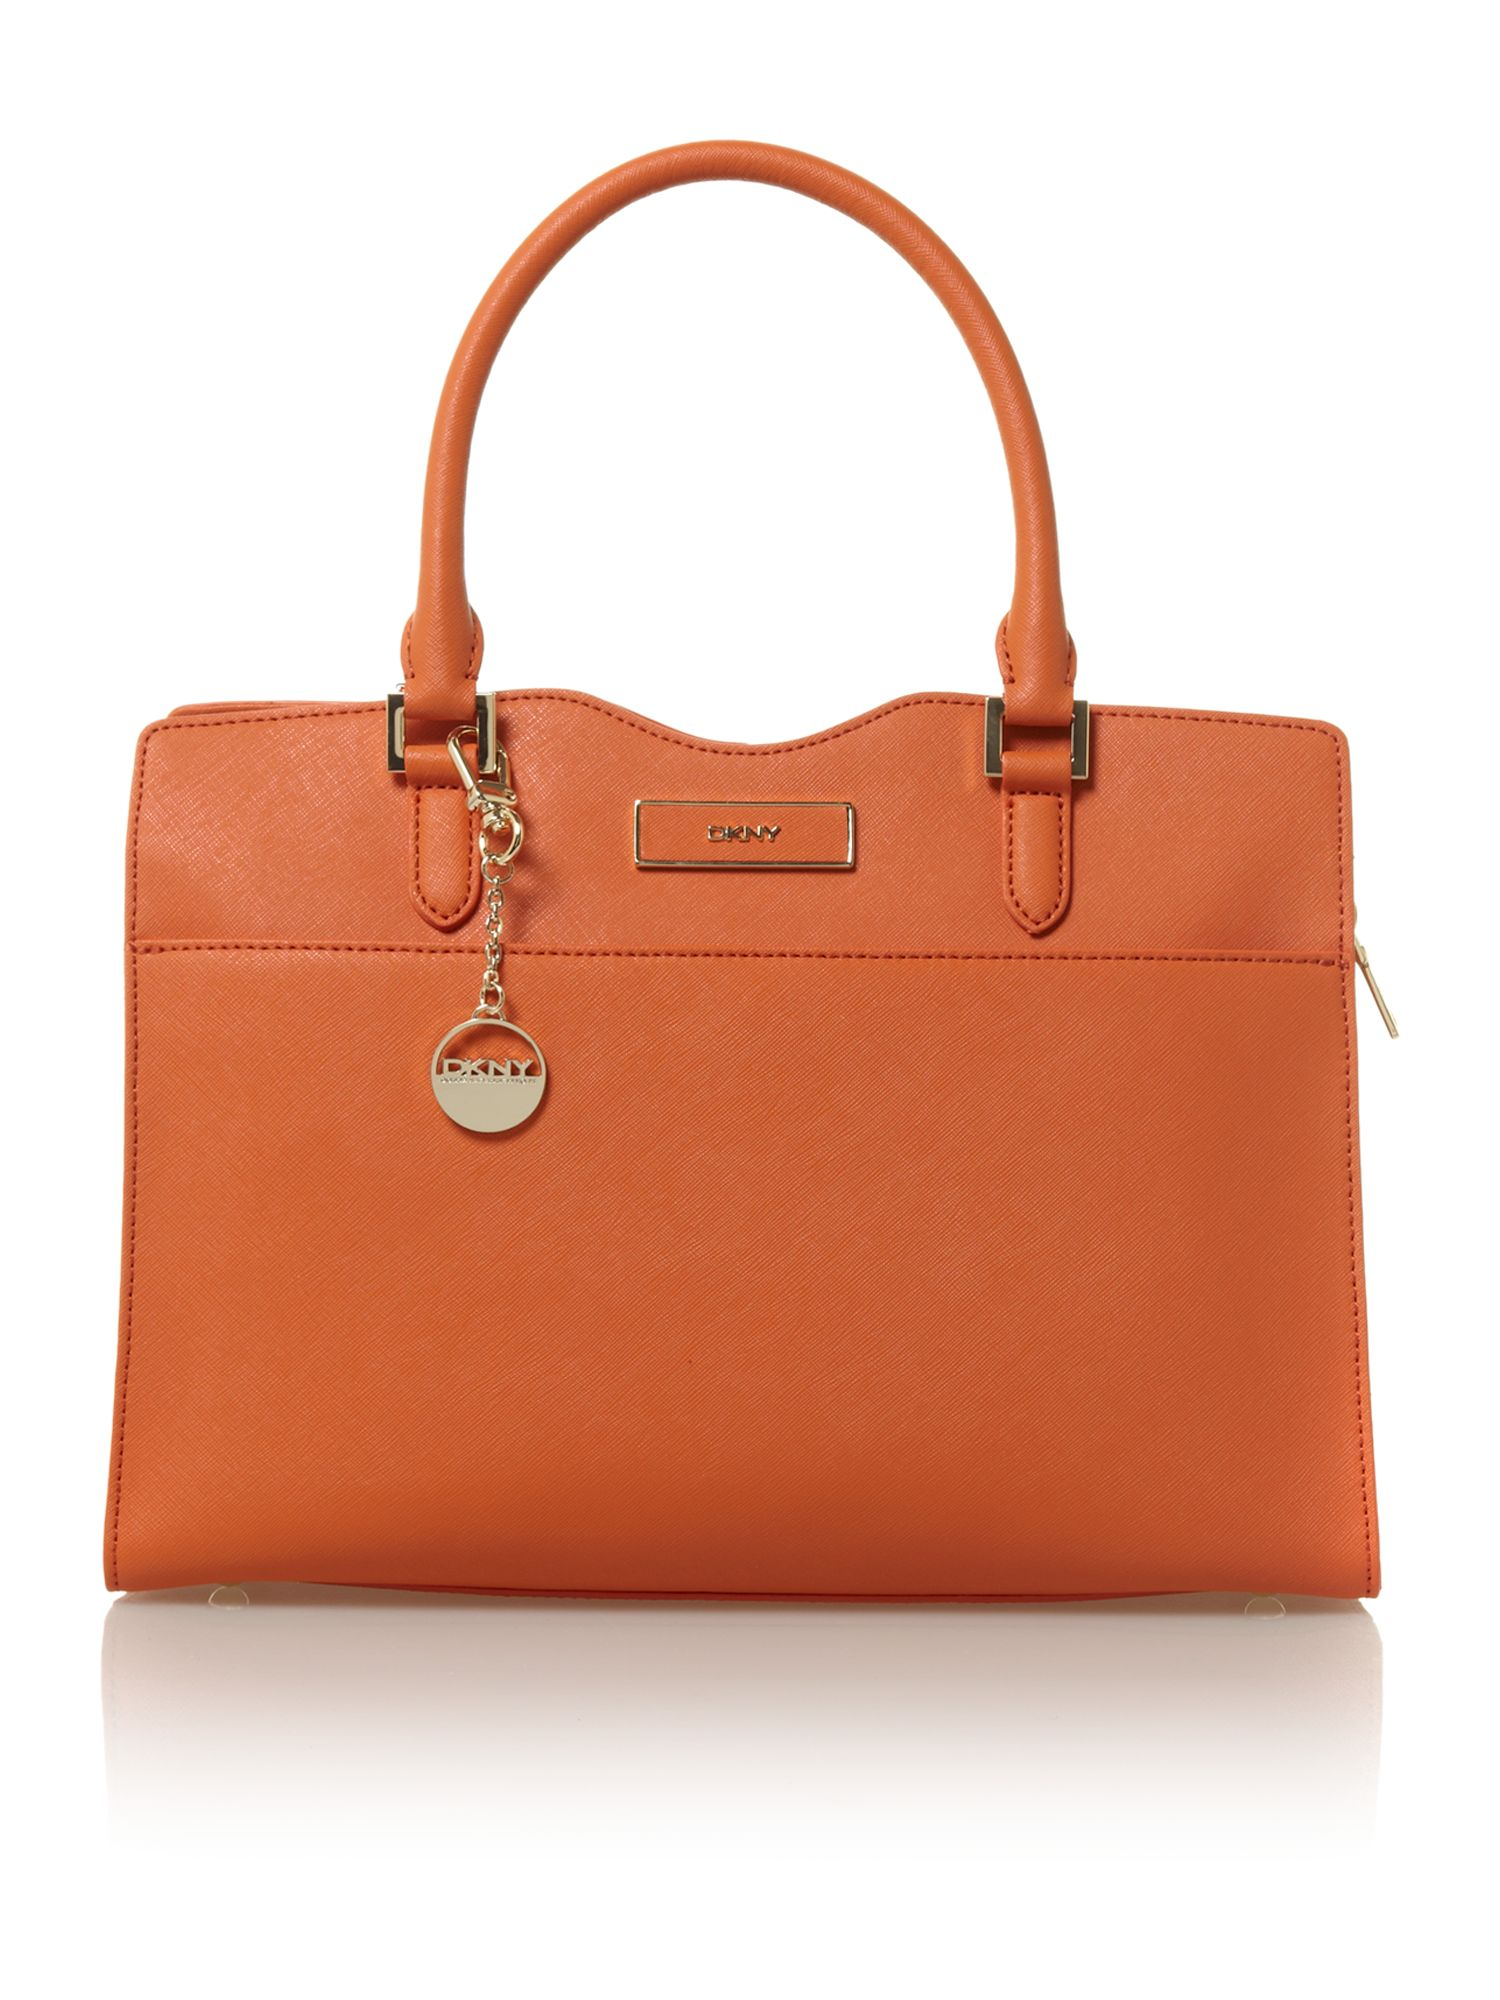 Saffiano orange tote bag